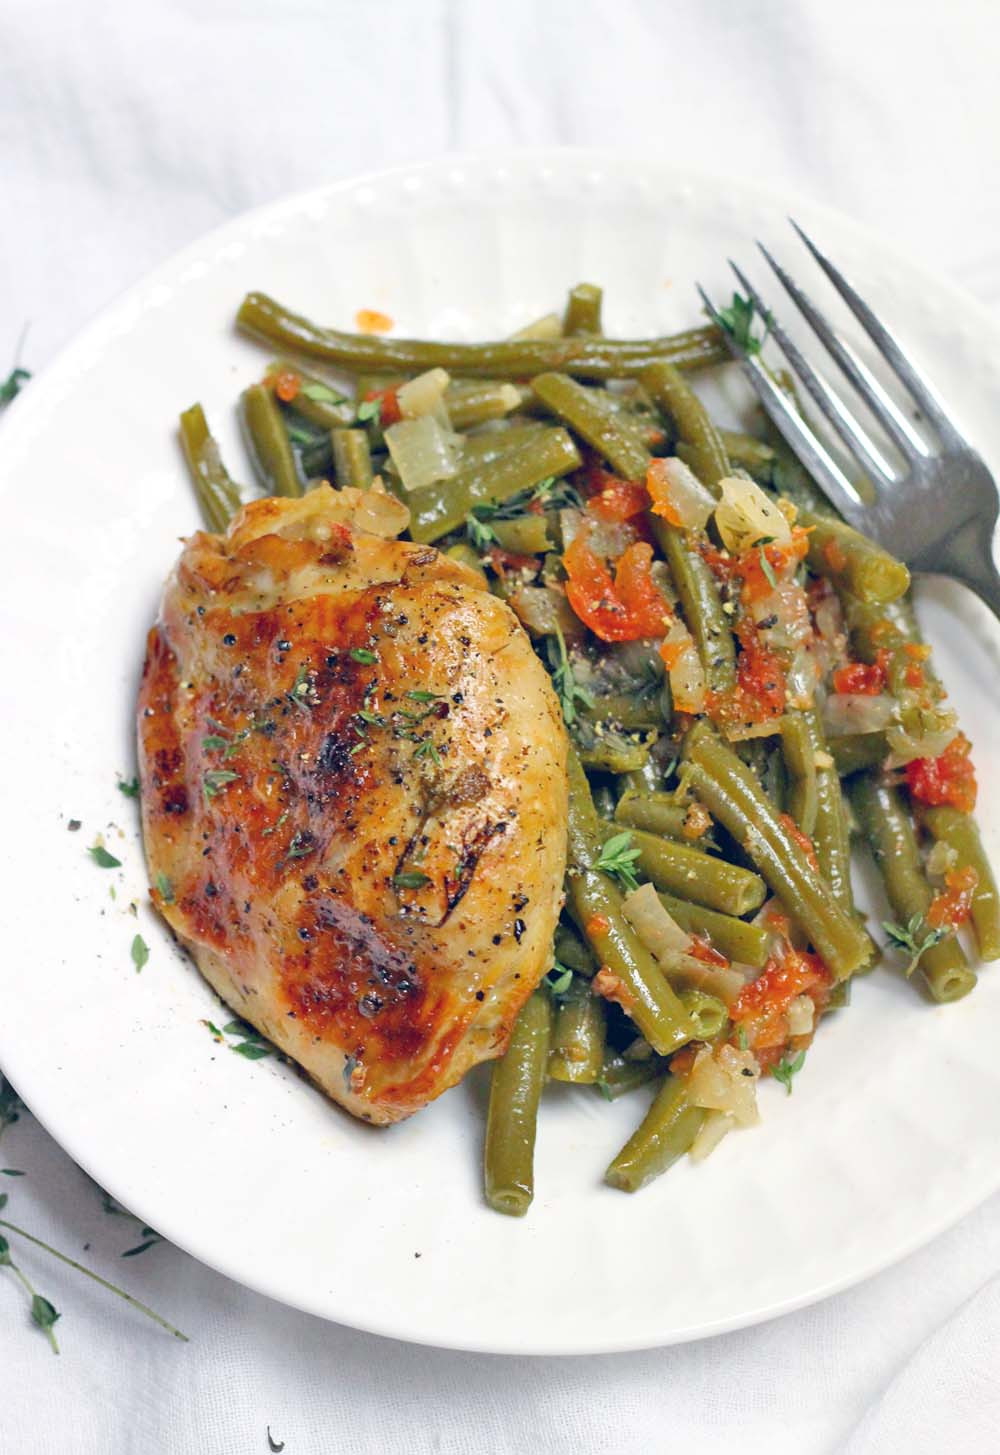 Healthy Slow Cooker Chicken Thighs  Slow Cooker Greek Style Green Beans and Chicken Thighs